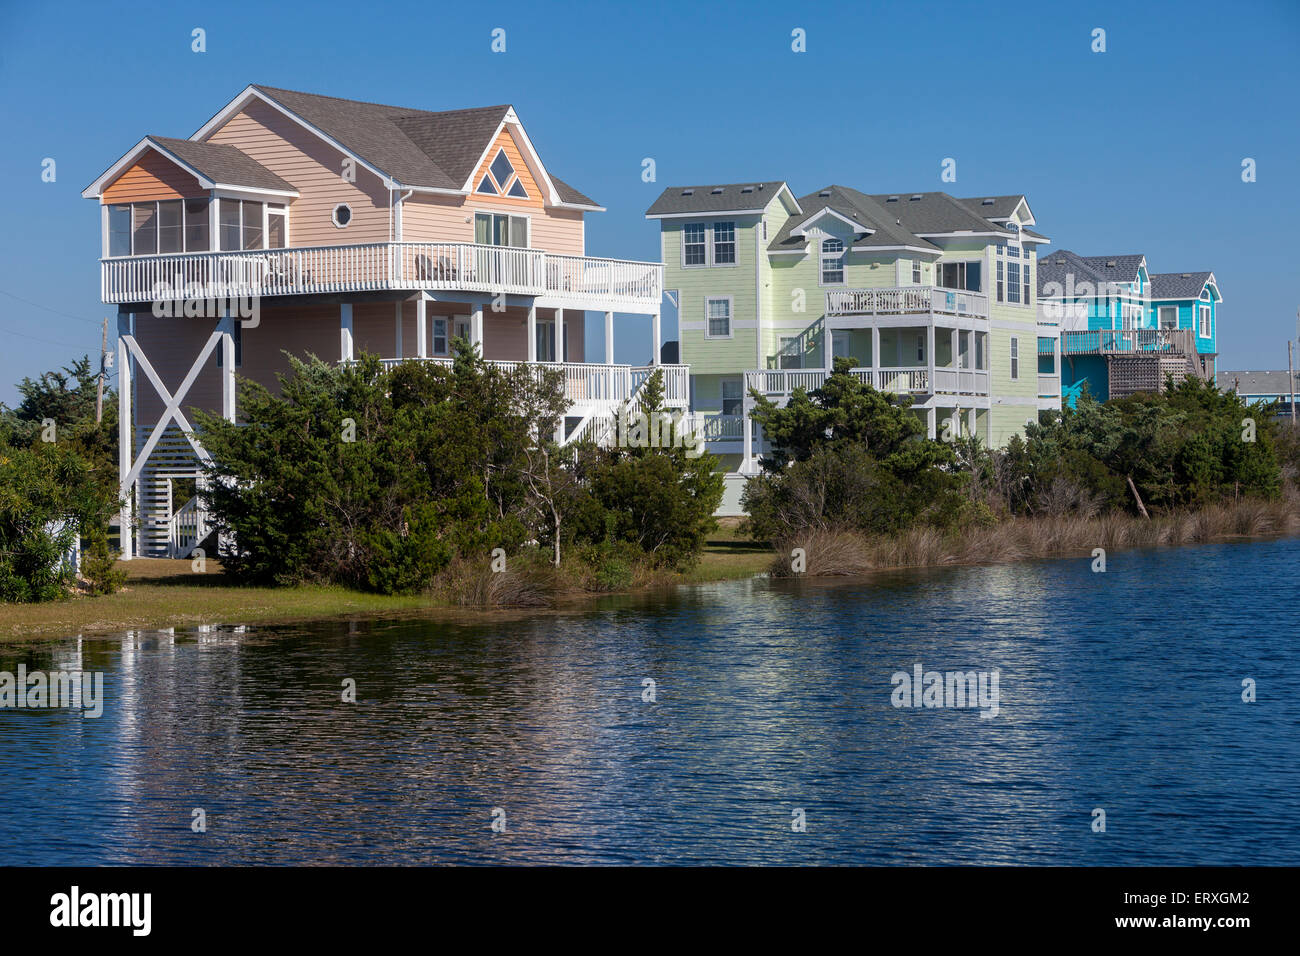 Surprising Avon Outer Banks North Carolina Vacation Homes By Download Free Architecture Designs Sospemadebymaigaardcom